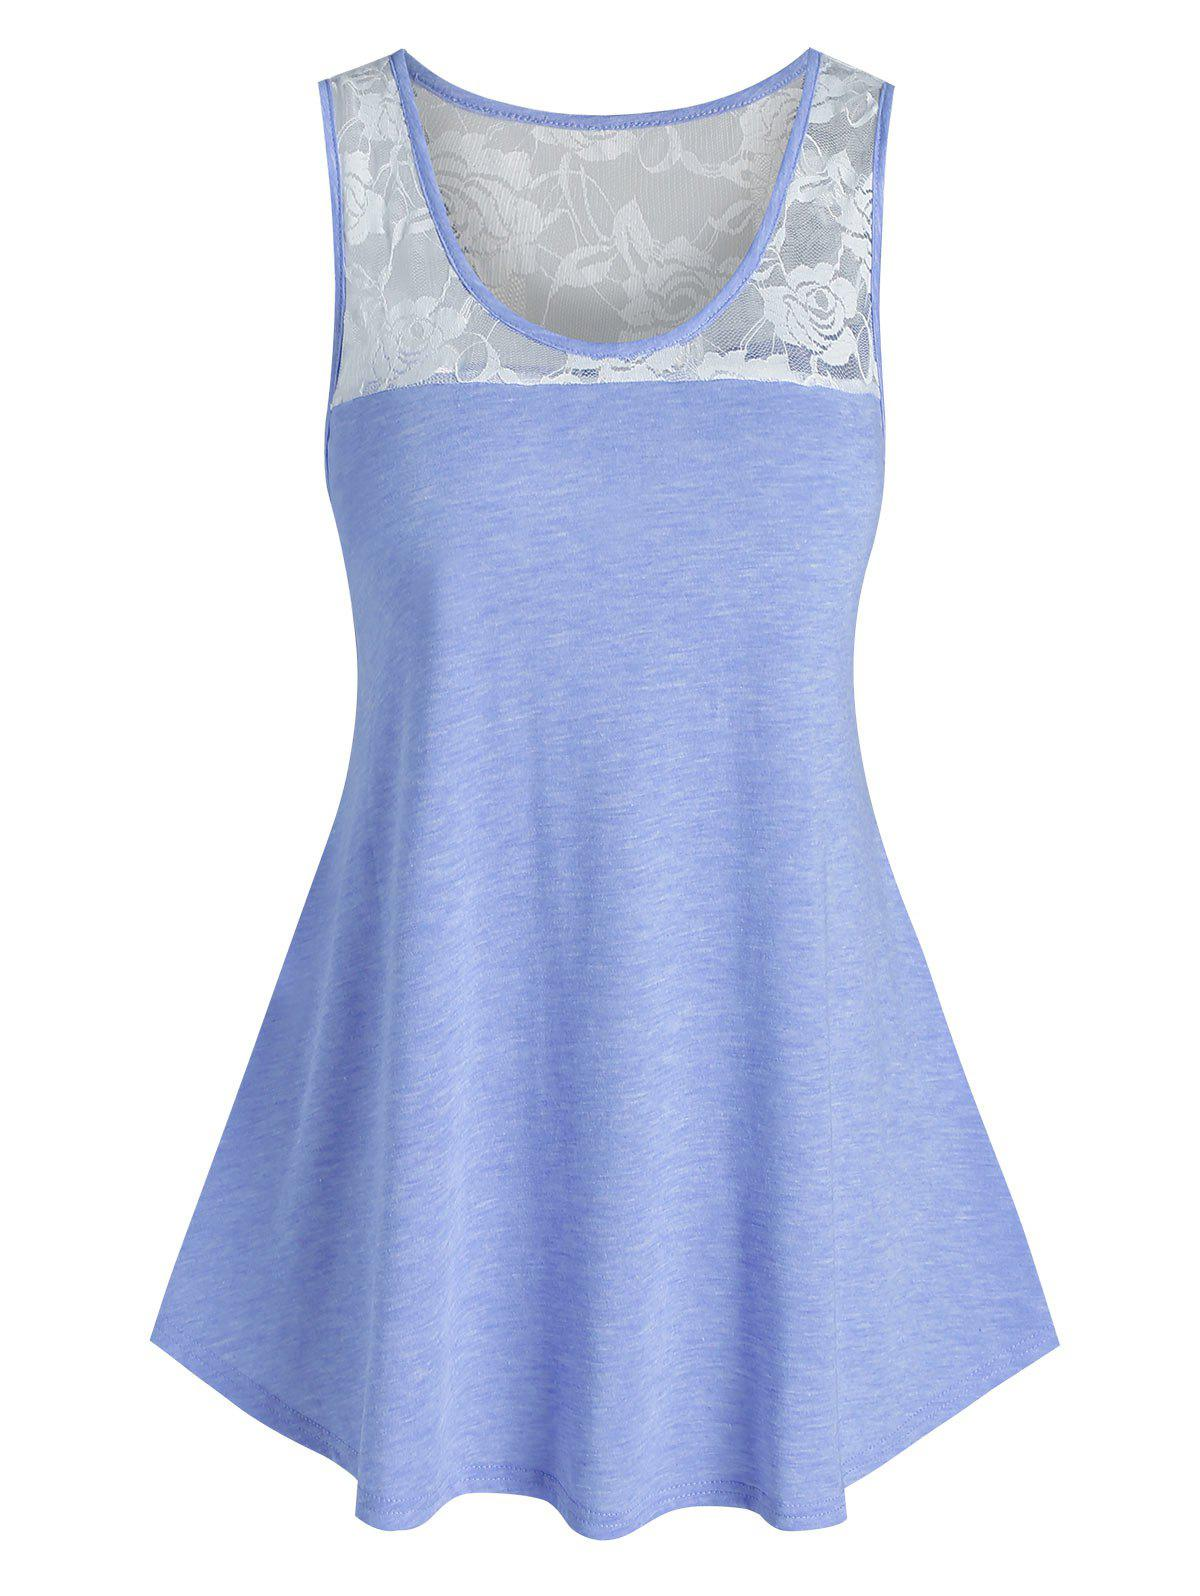 Shop Basic Lace Insert Swing Tank Top